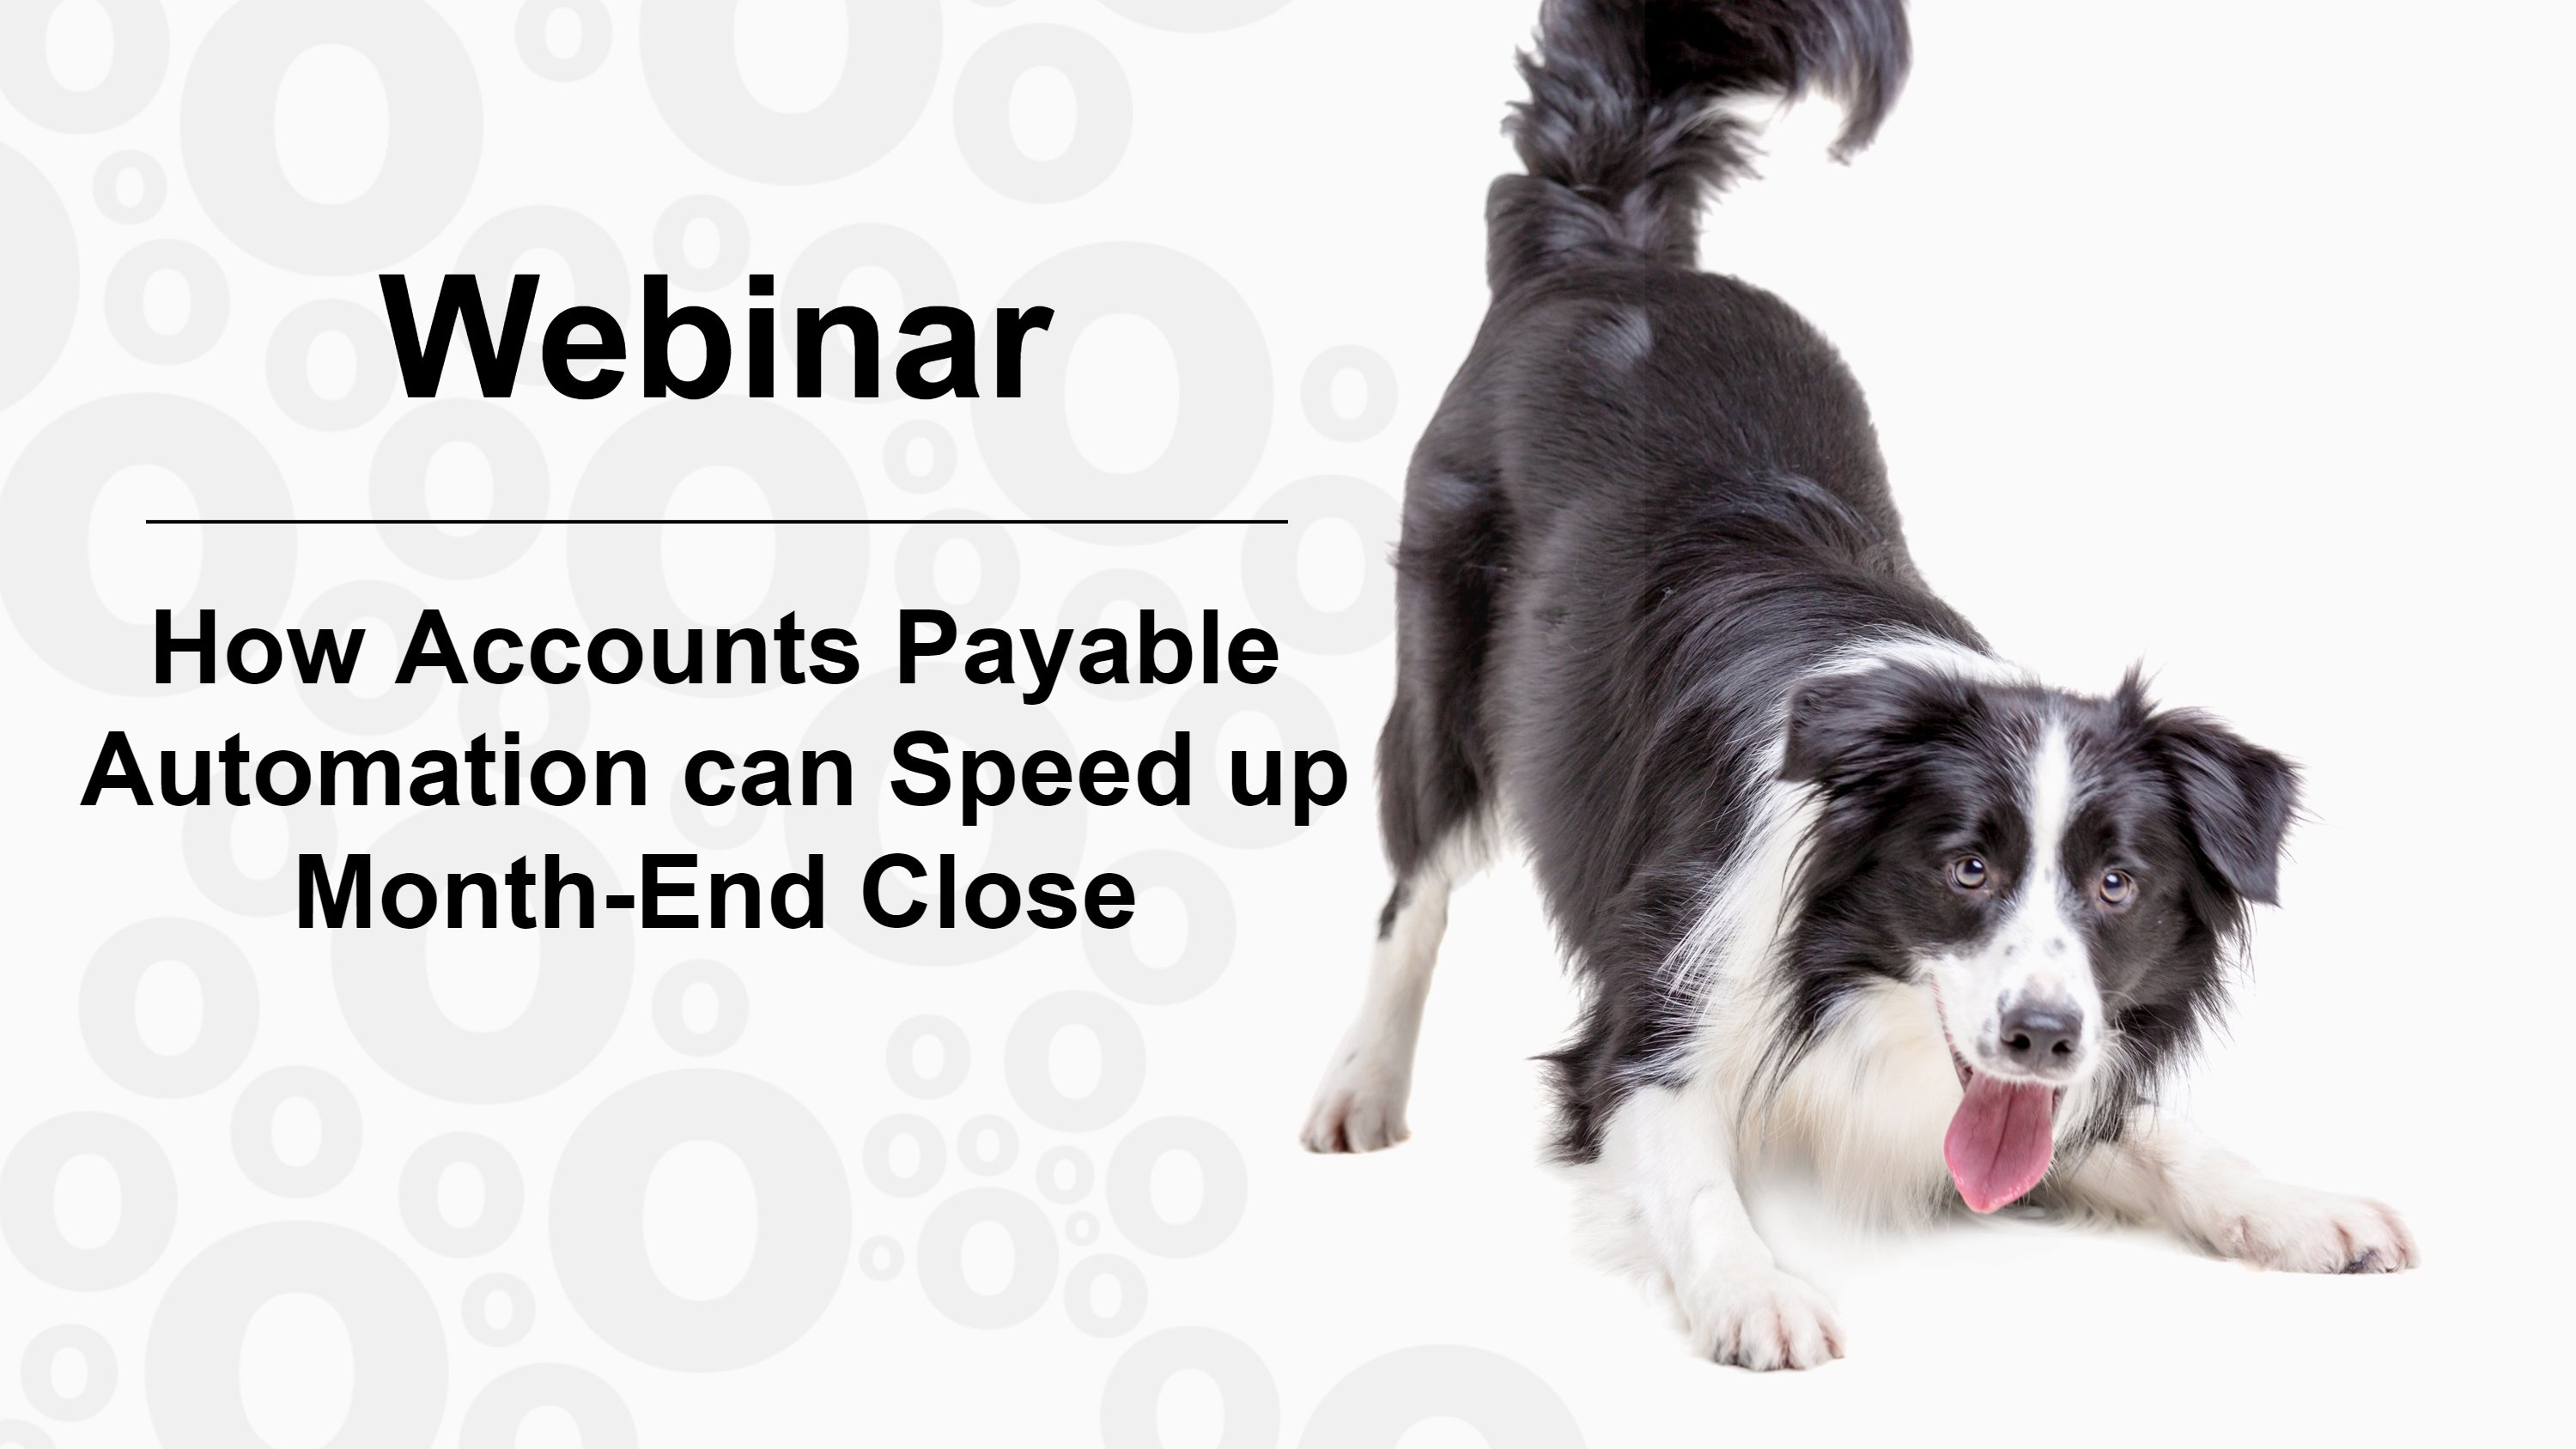 How Accounts Payable Automation can Speed up Month-End Close